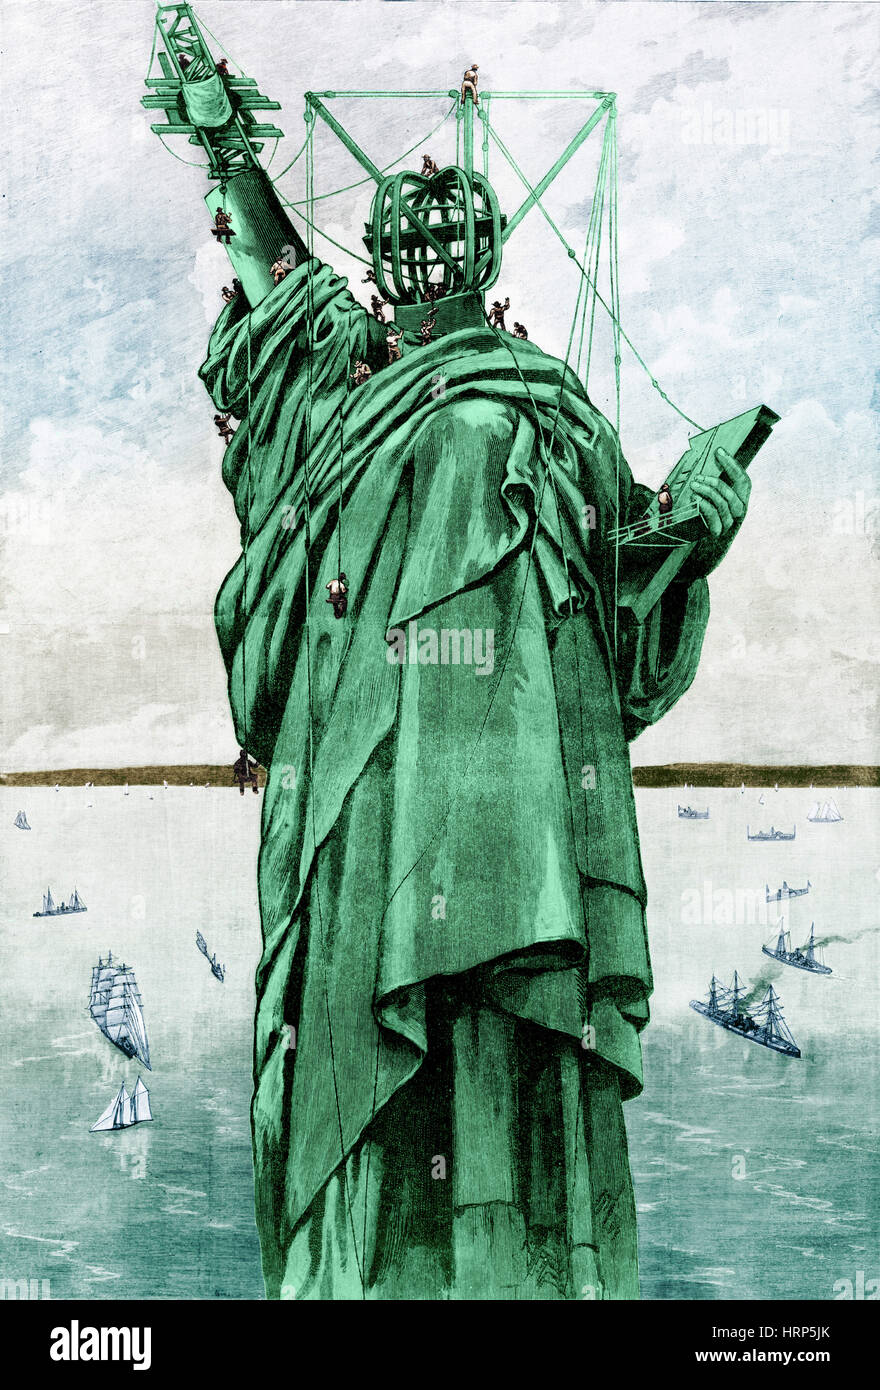 Statue Of Liberty 1886 High Resolution Stock Photography And Images Alamy